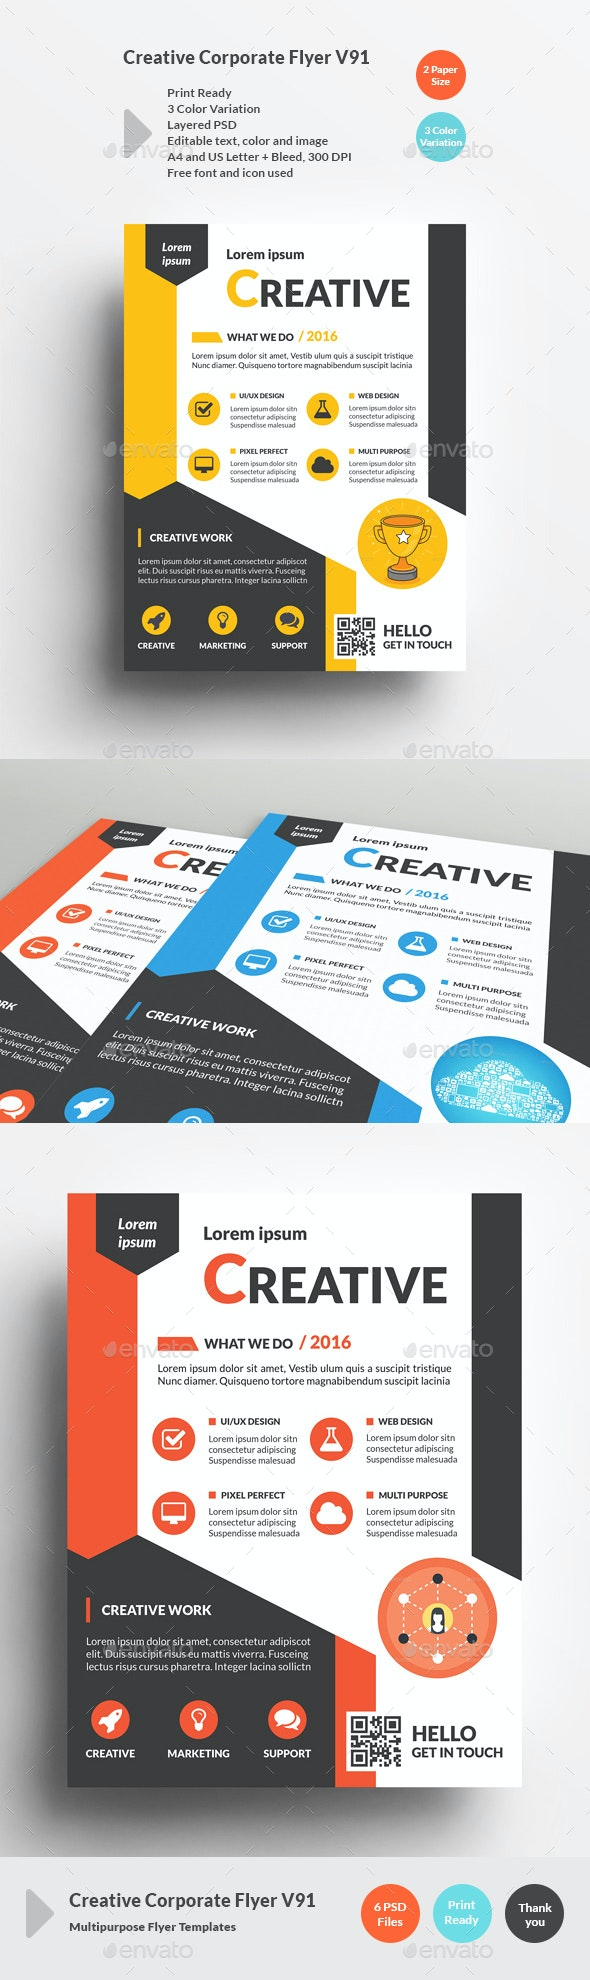 Creative Corporate Flyer V91 - Corporate Flyers